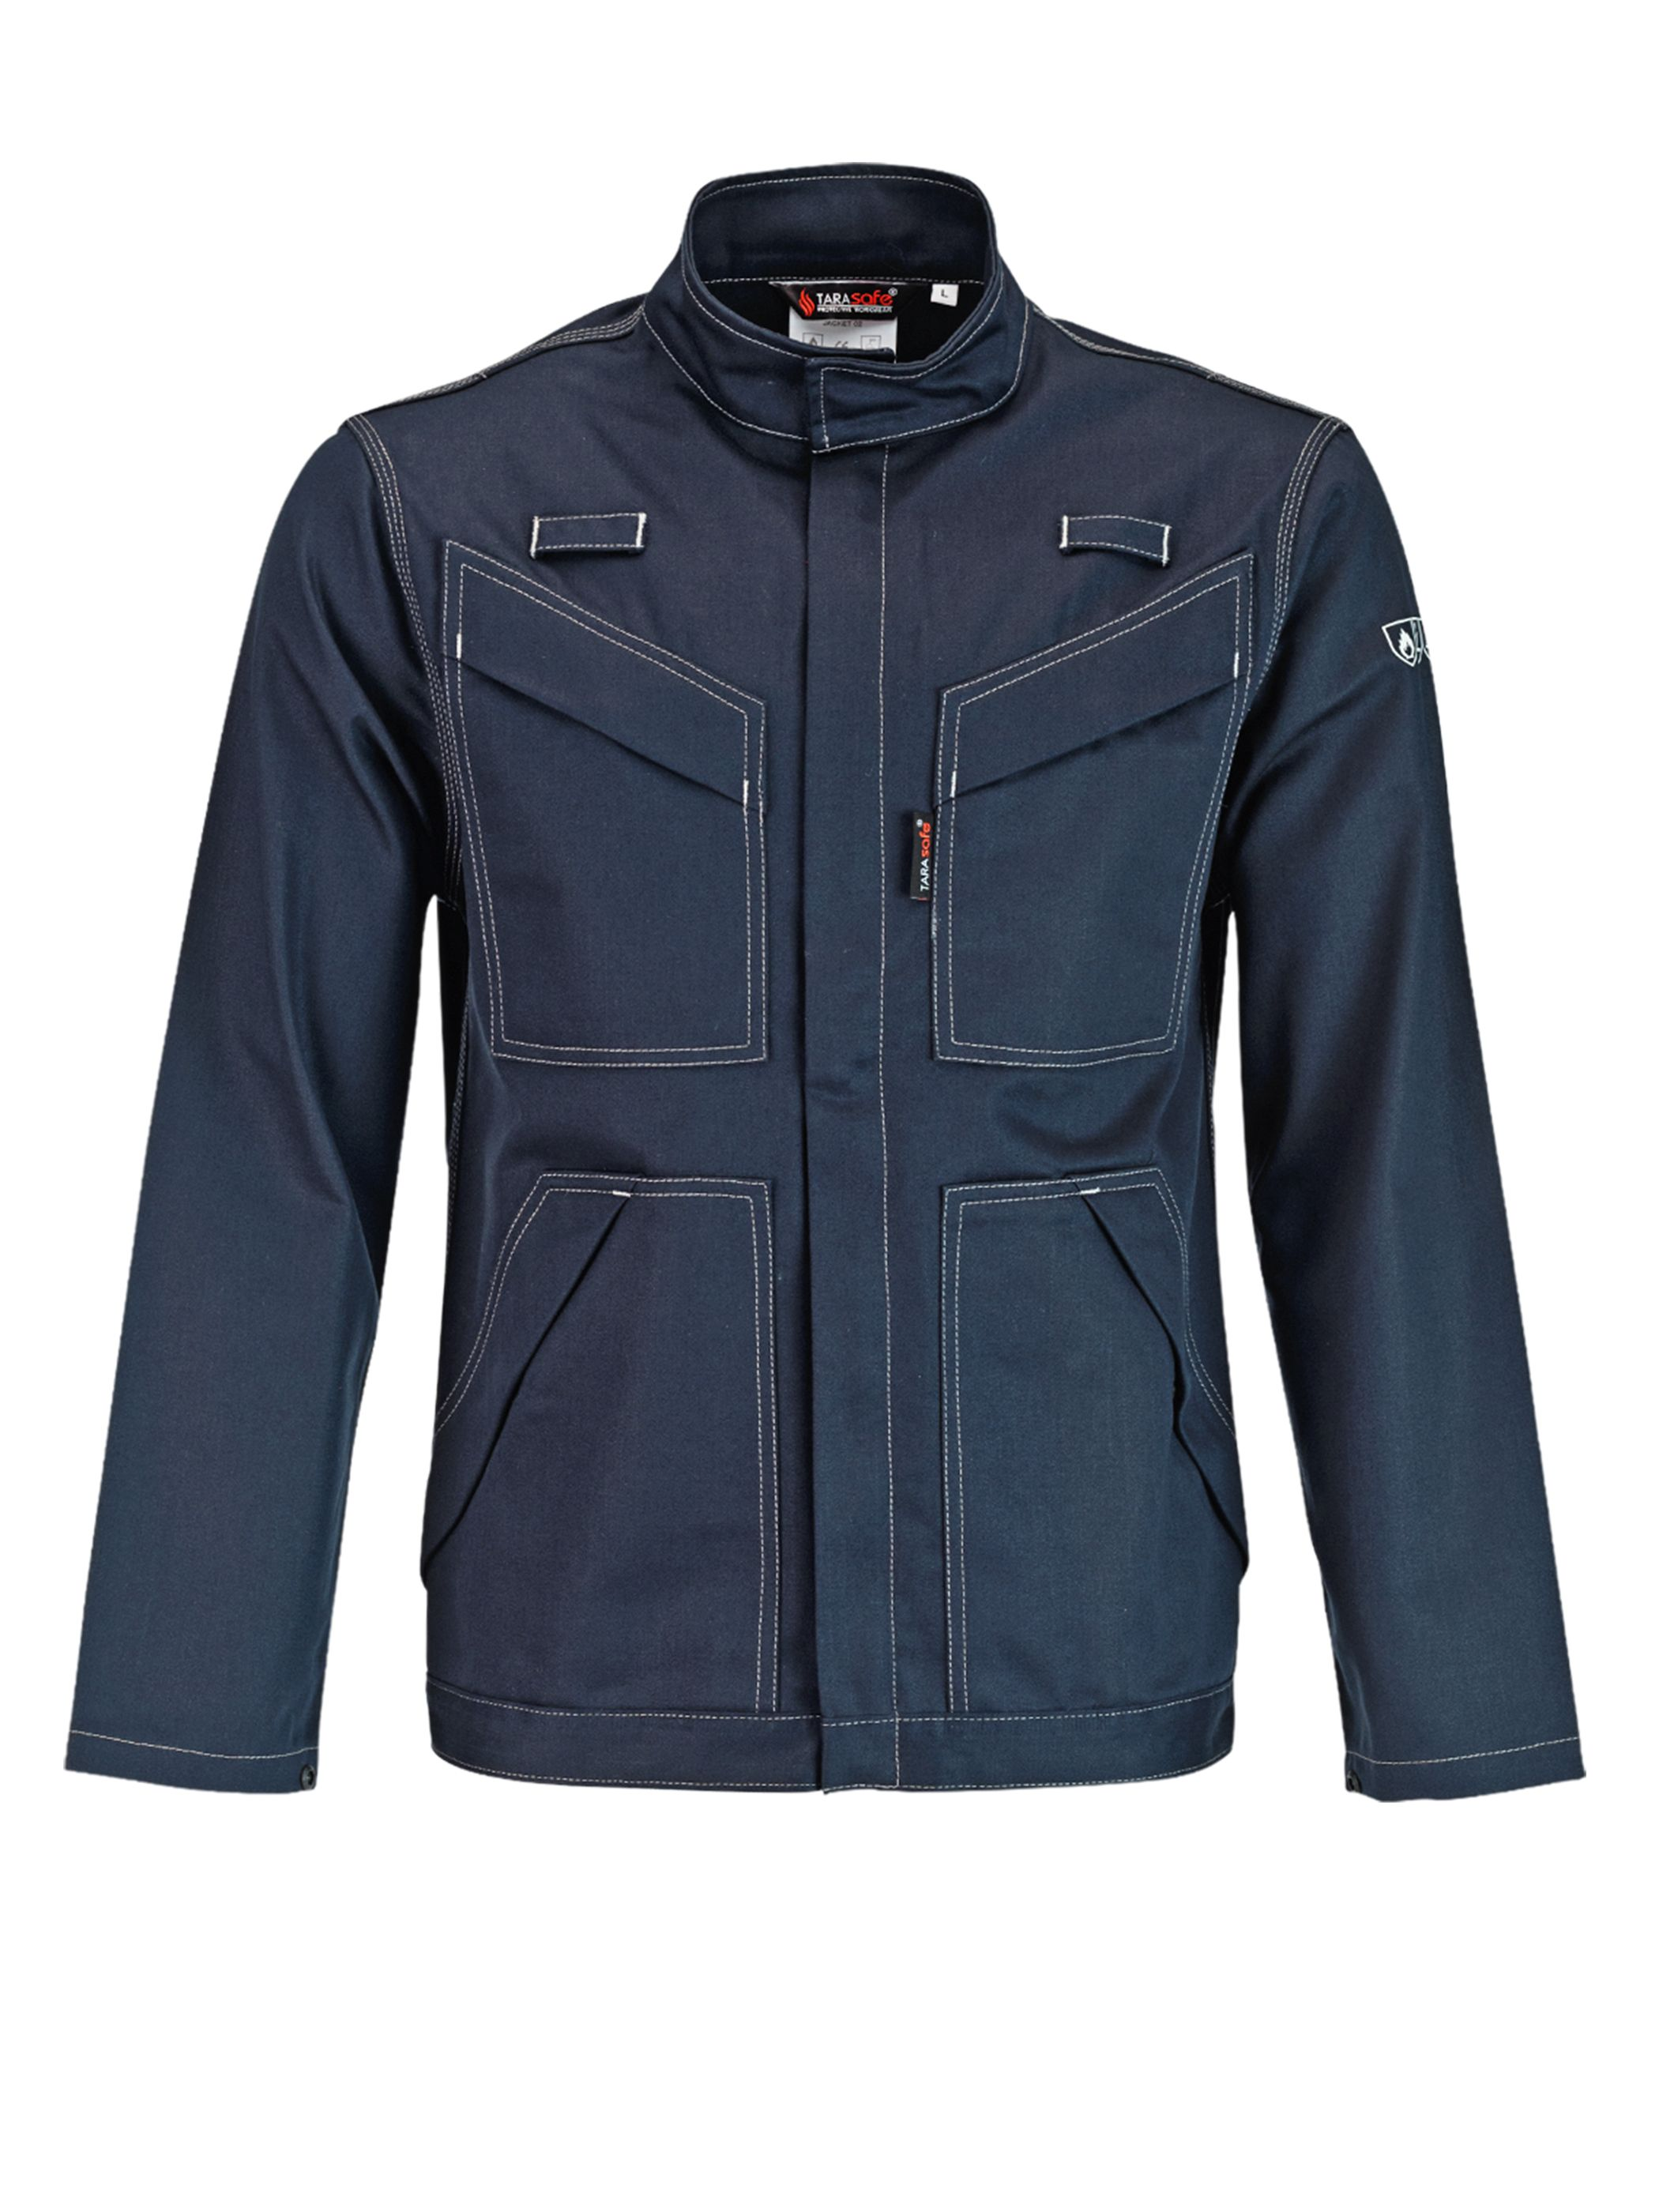 Metaal Jacket FRJackets FRClothing PPE FRSafety